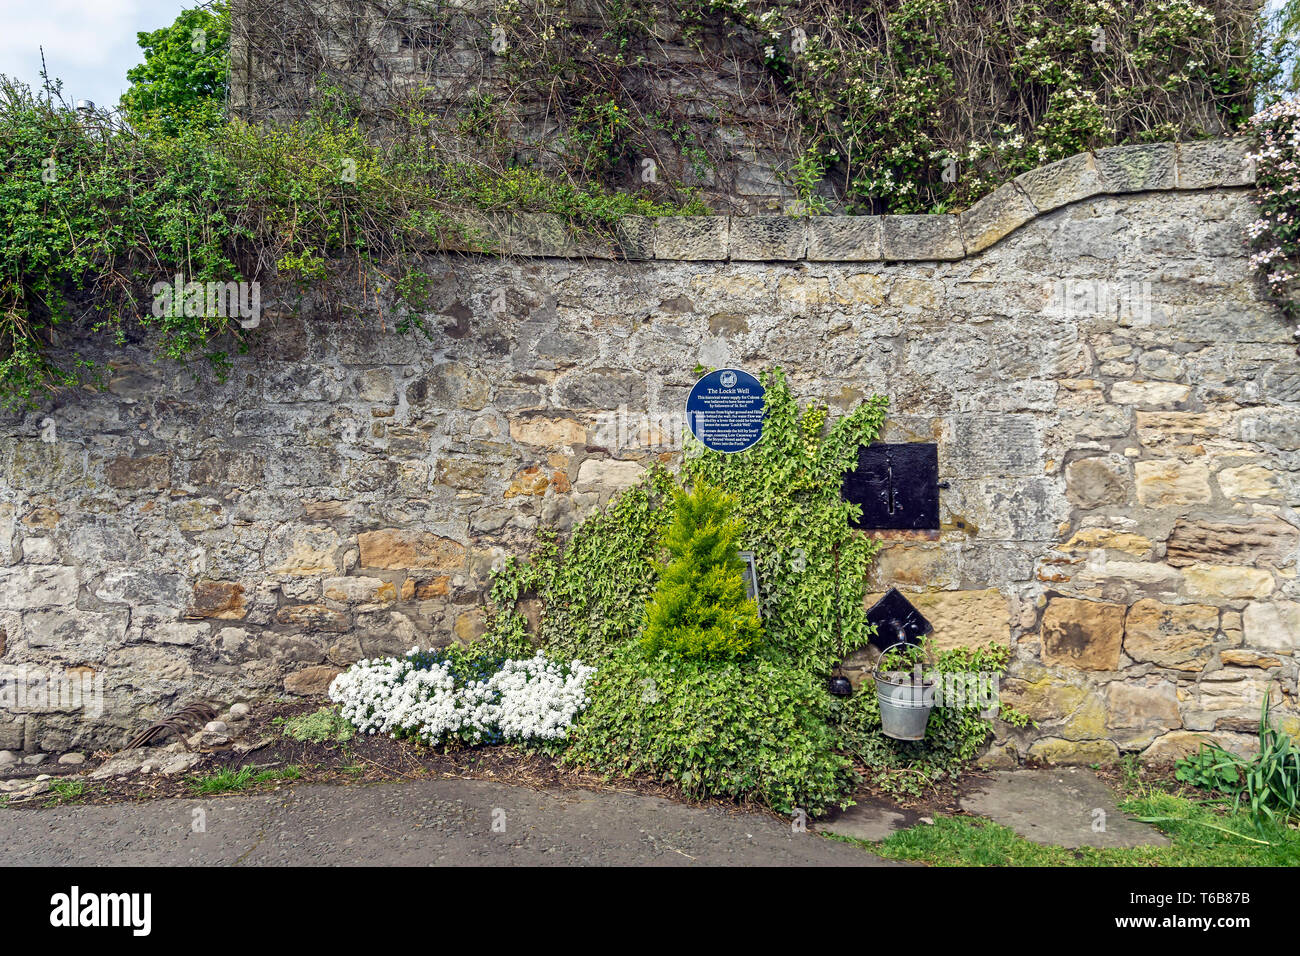 The Lockit Well in NTS town The Royal Burgh of Culross Fife Scotland UK - Stock Image